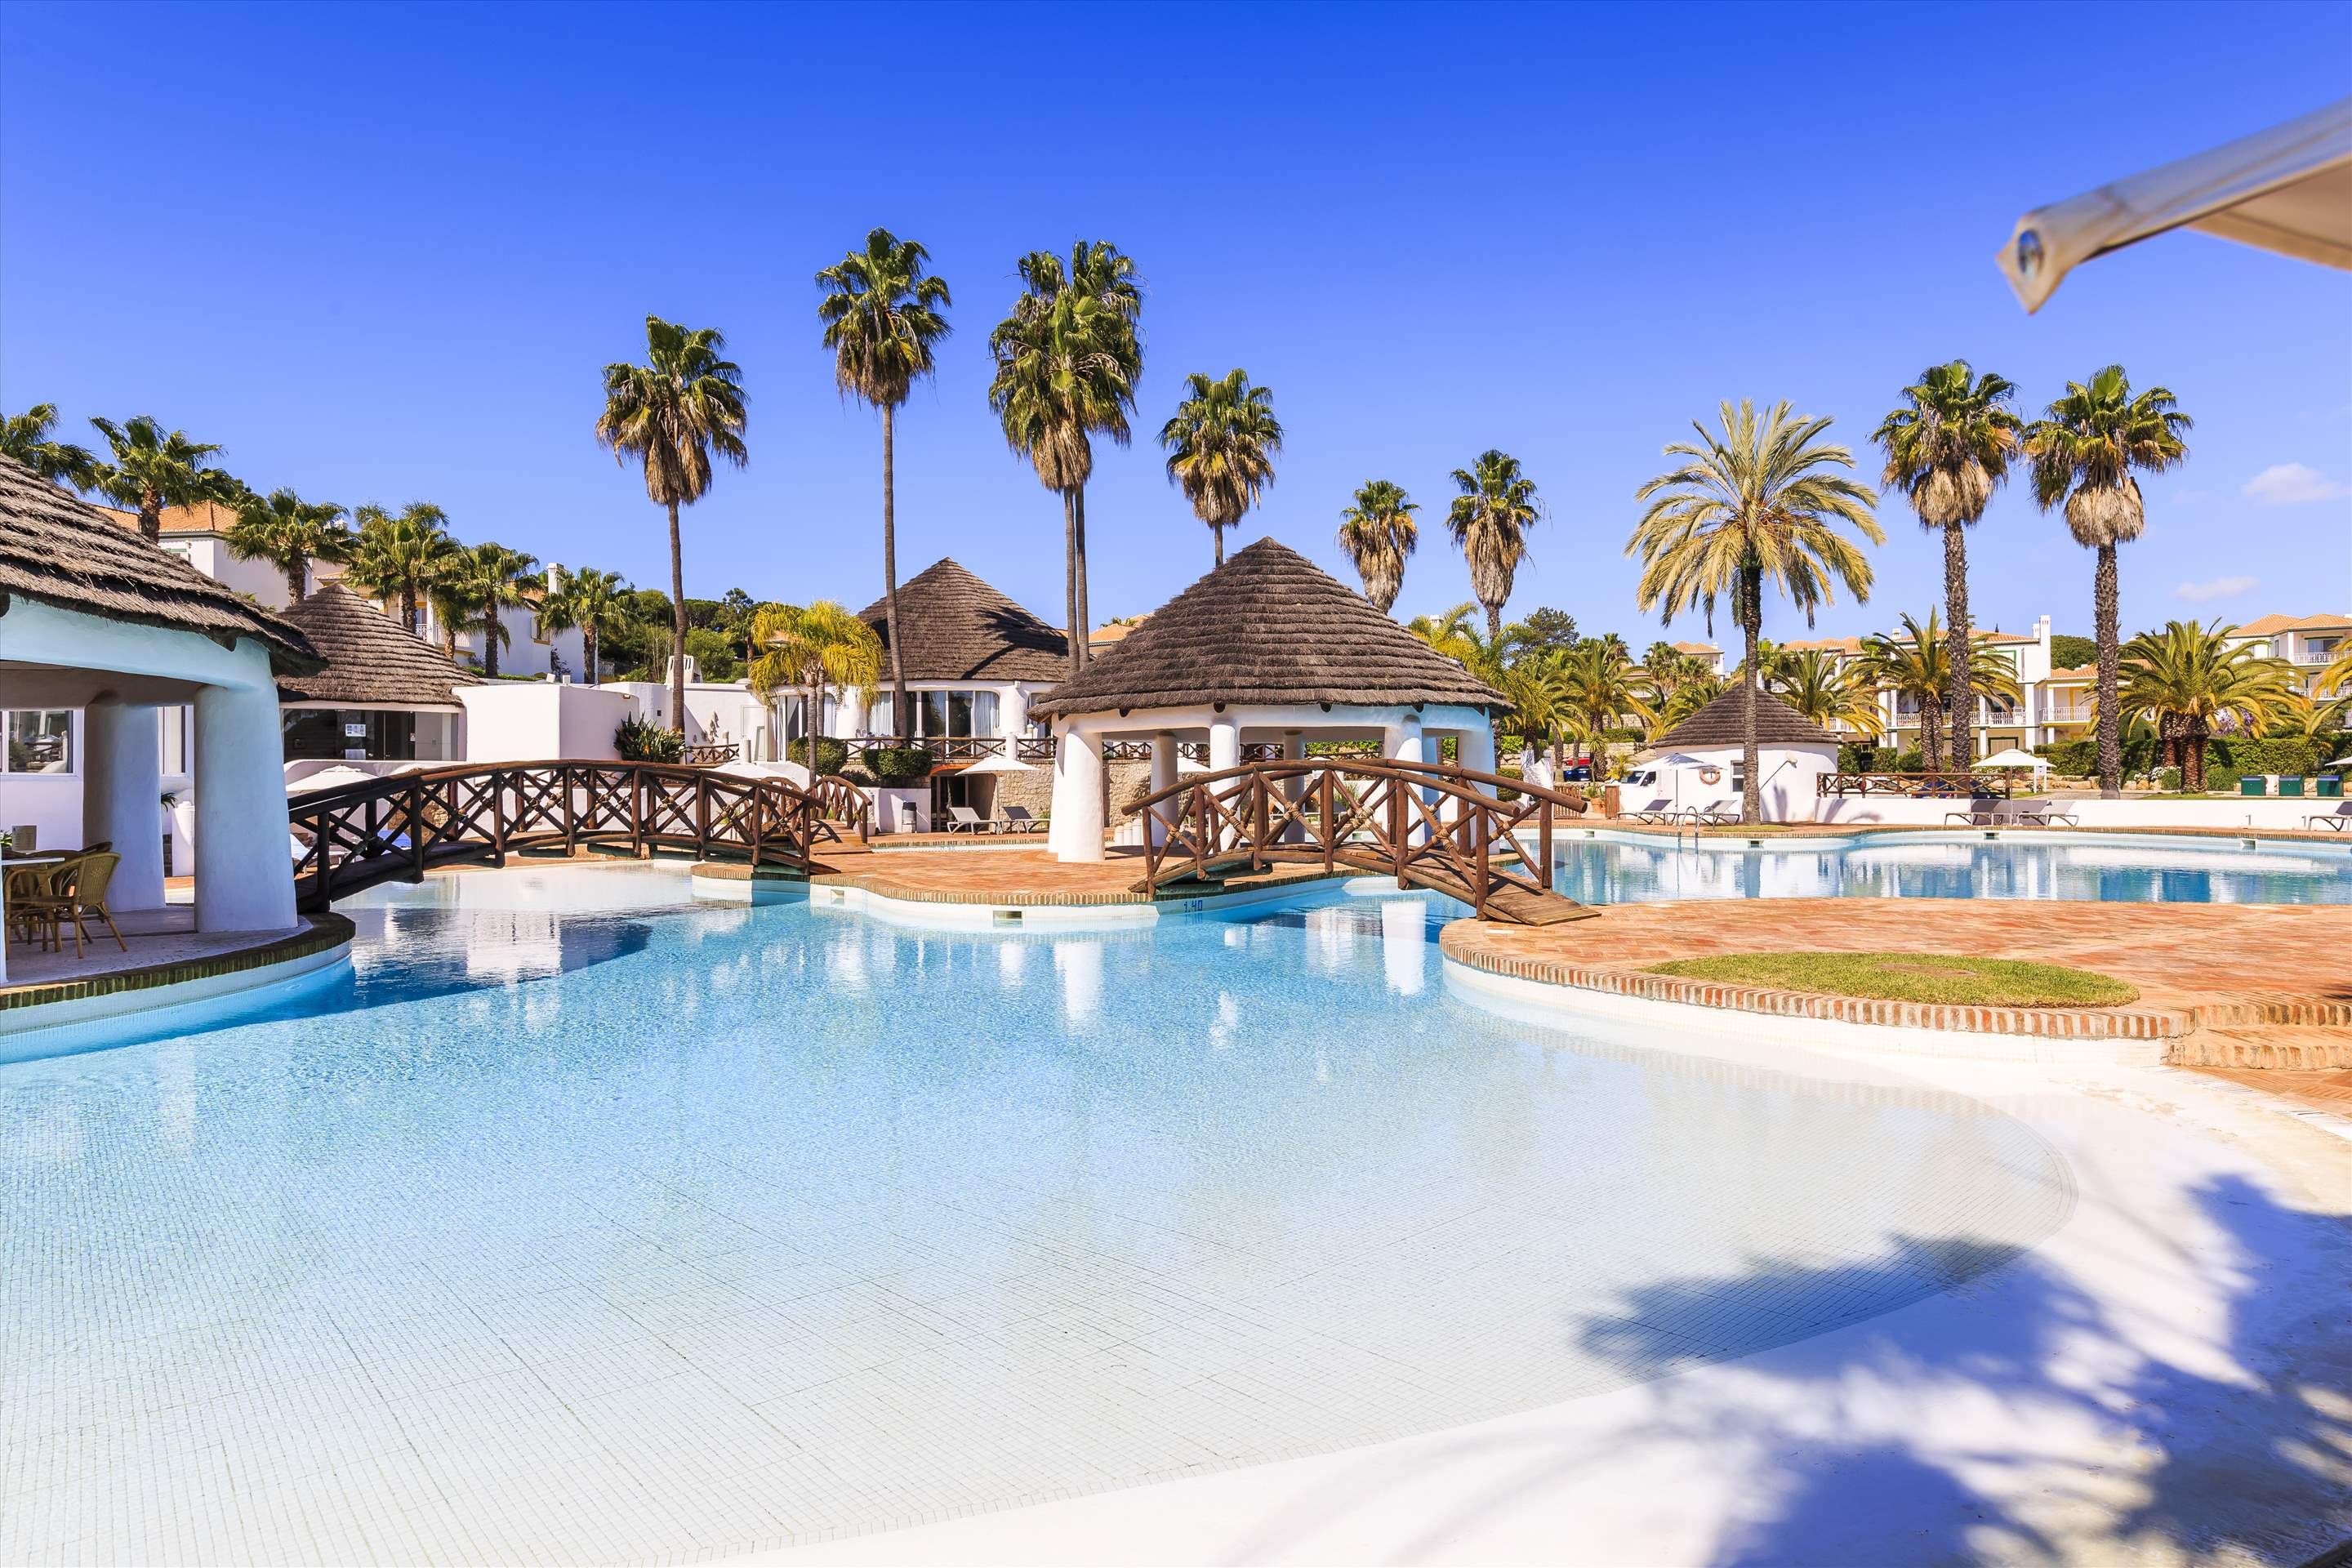 Encosta do Lago 1 Bedroom Apt, Top Floor, 1 bedroom apartment in Encosta do Lago Resort, Algarve Photo #17